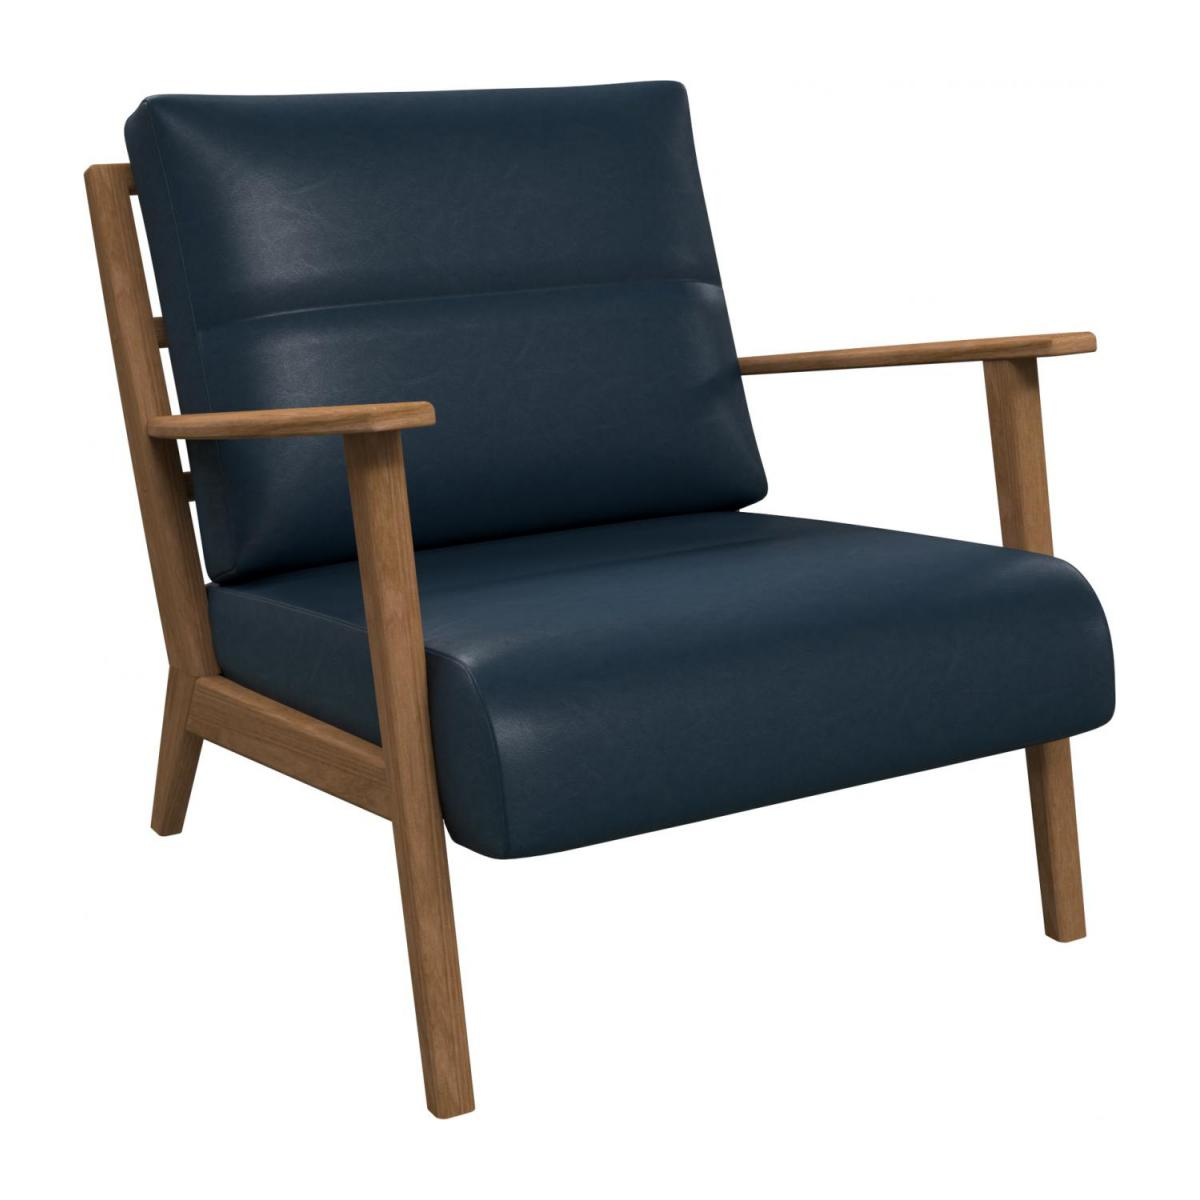 Armchair in Vintage aniline leather, denim blue n°1